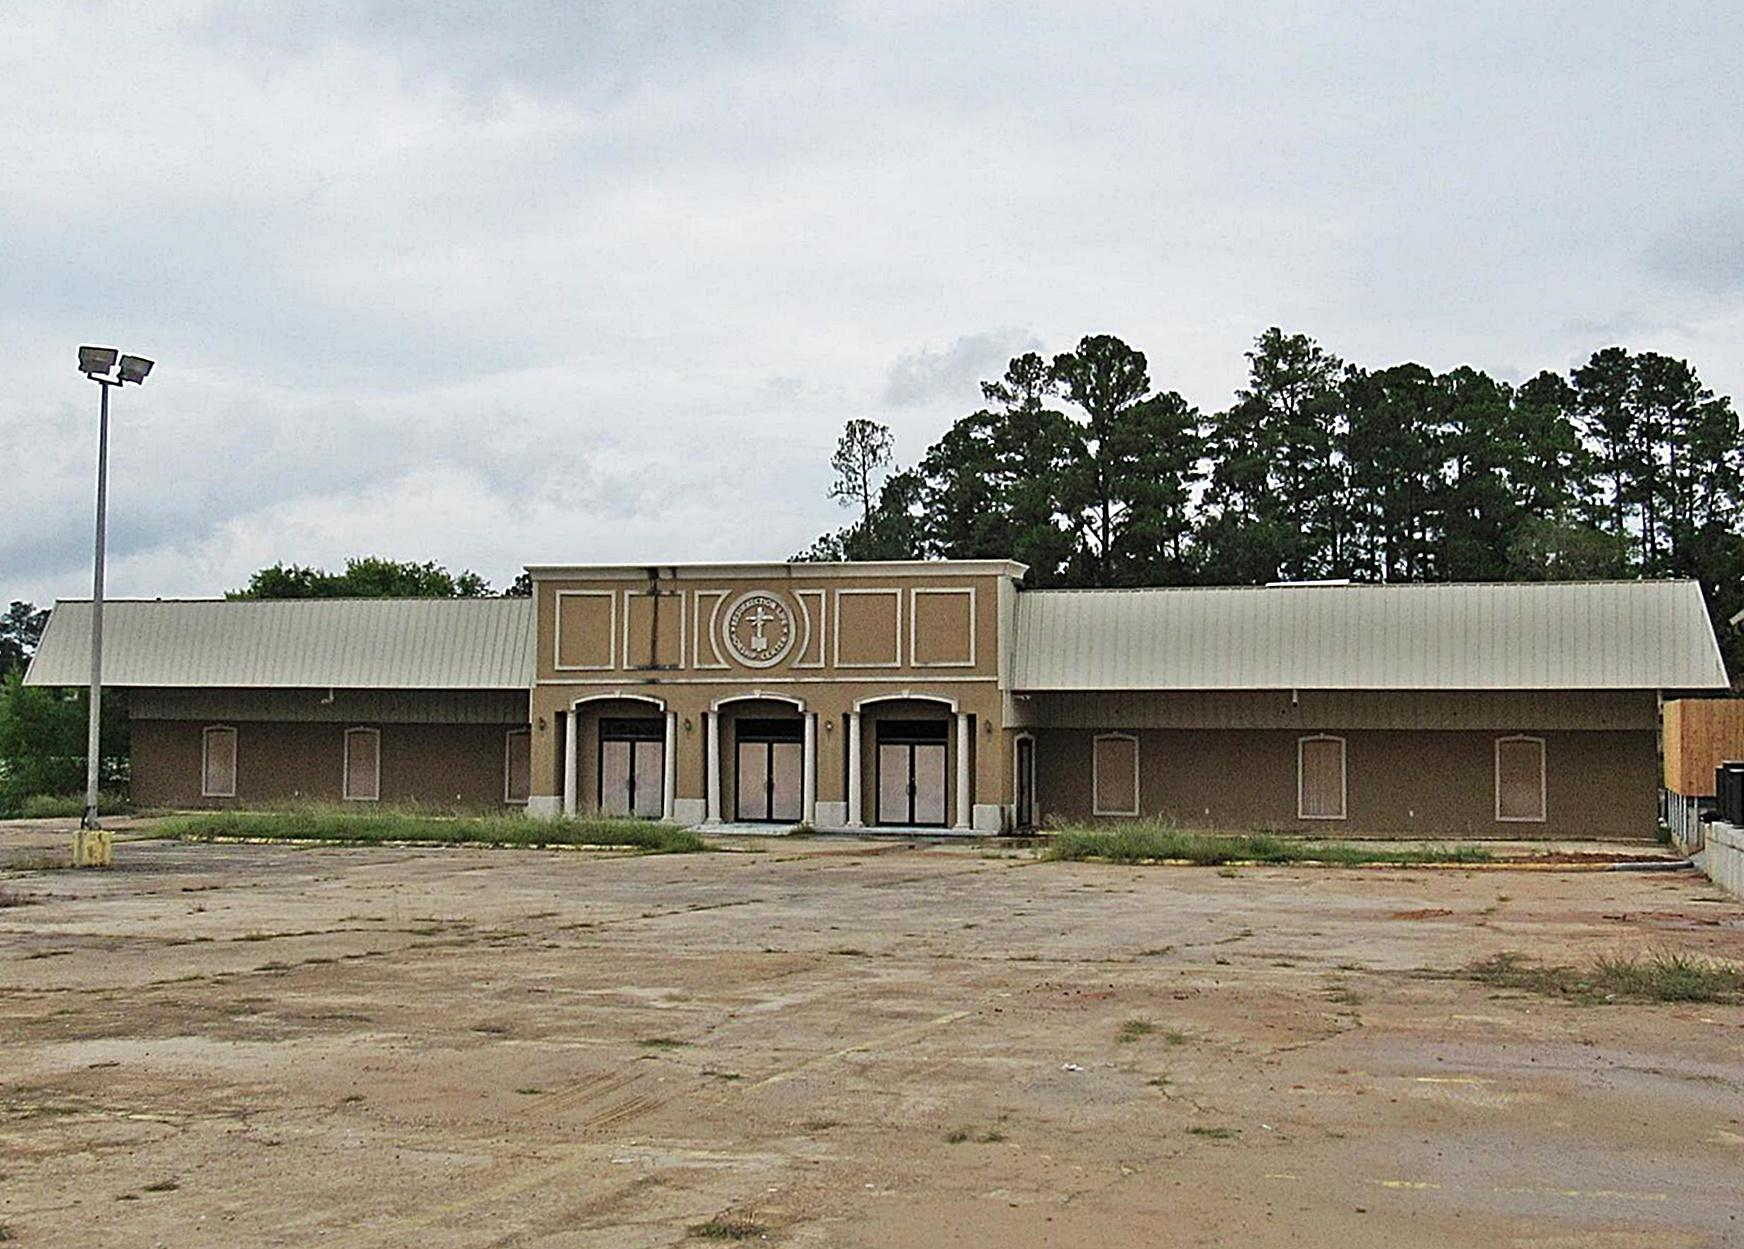 Leesville commercial property for sale, 608 NOLAN TRACE, Leesville LA - $765,000